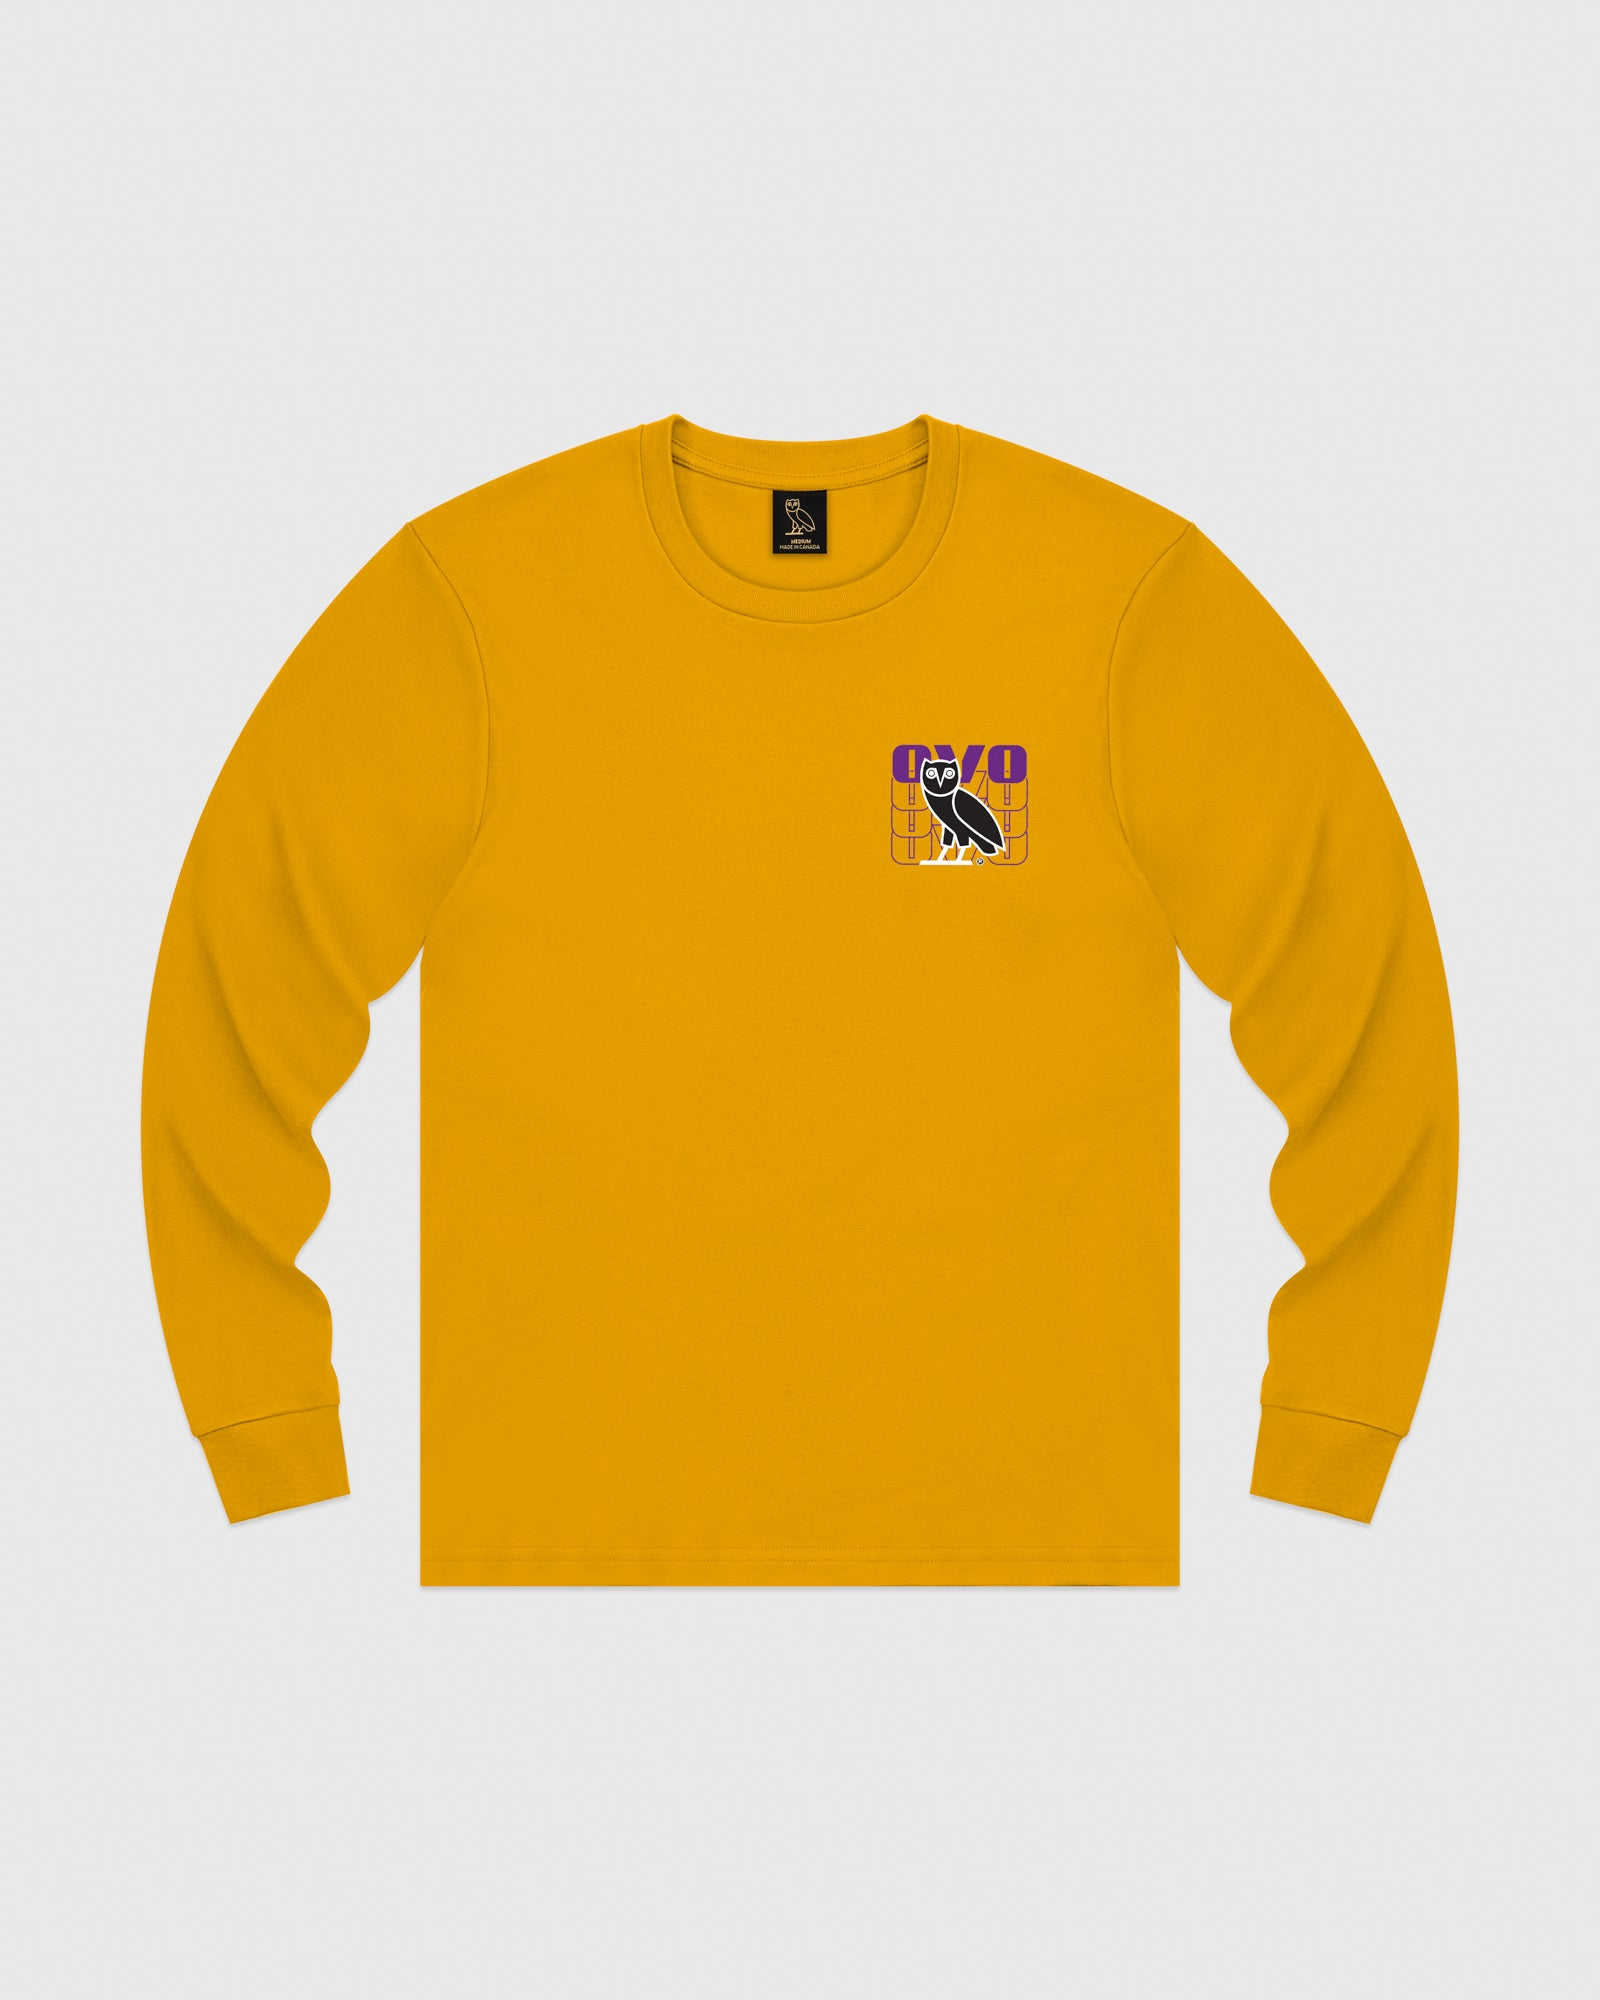 OVO ECHO LONGSLEEVE T-SHIRT - AUTUMN YELLOW IMAGE #1